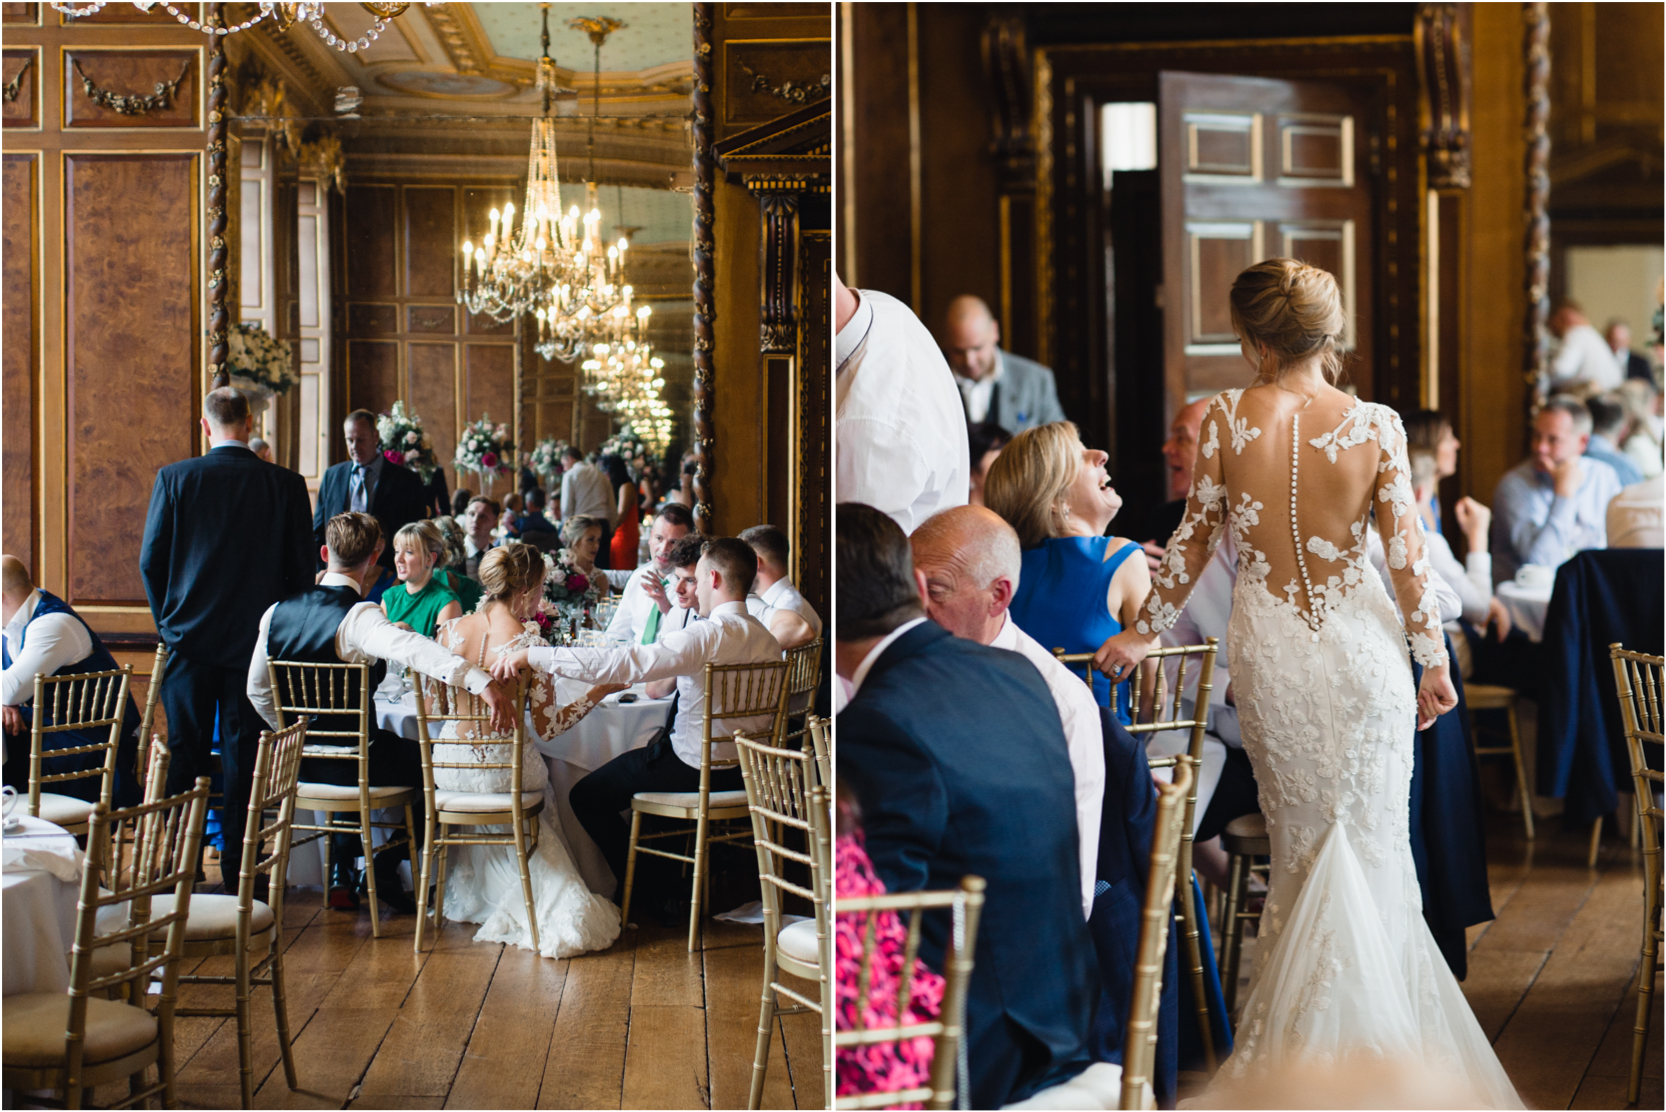 Gosfield Hall Wedding Photography Surrey Luxury Photographer 87.jpg